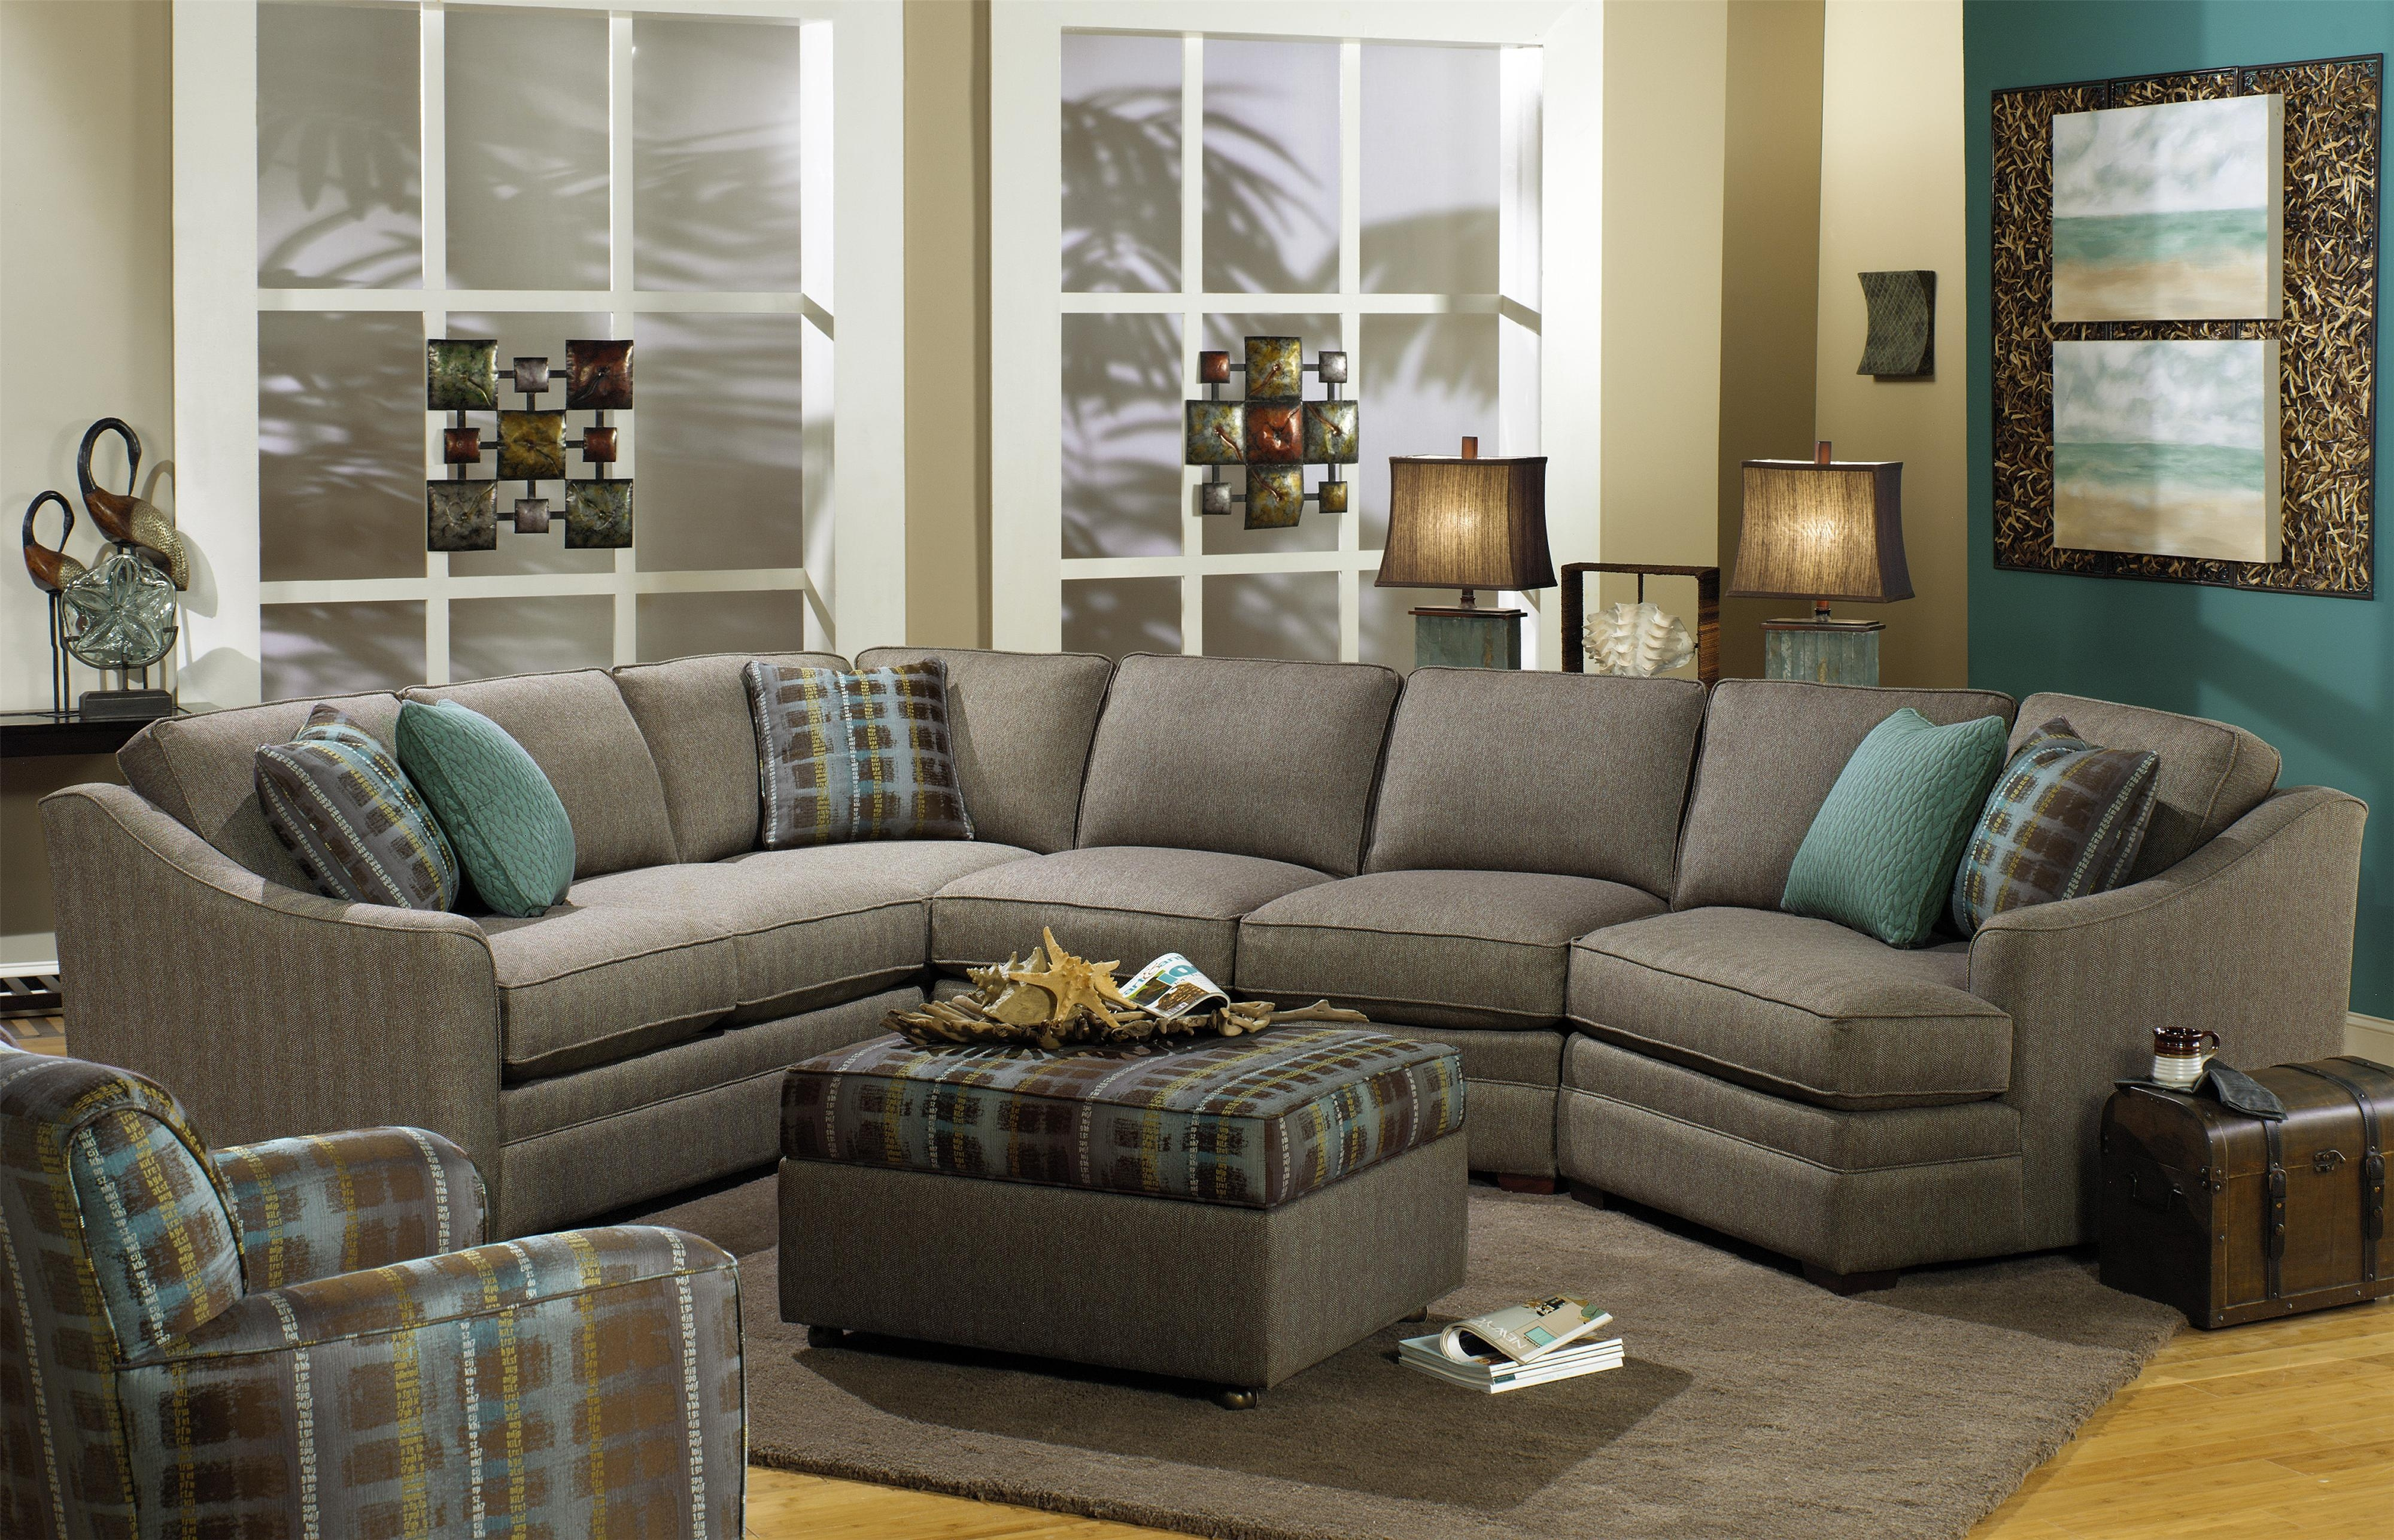 Craftmaster F9 Custom Collection Customizable 3 Piece Sectional Regarding Craftmaster Sectional Sofa (Image 6 of 15)